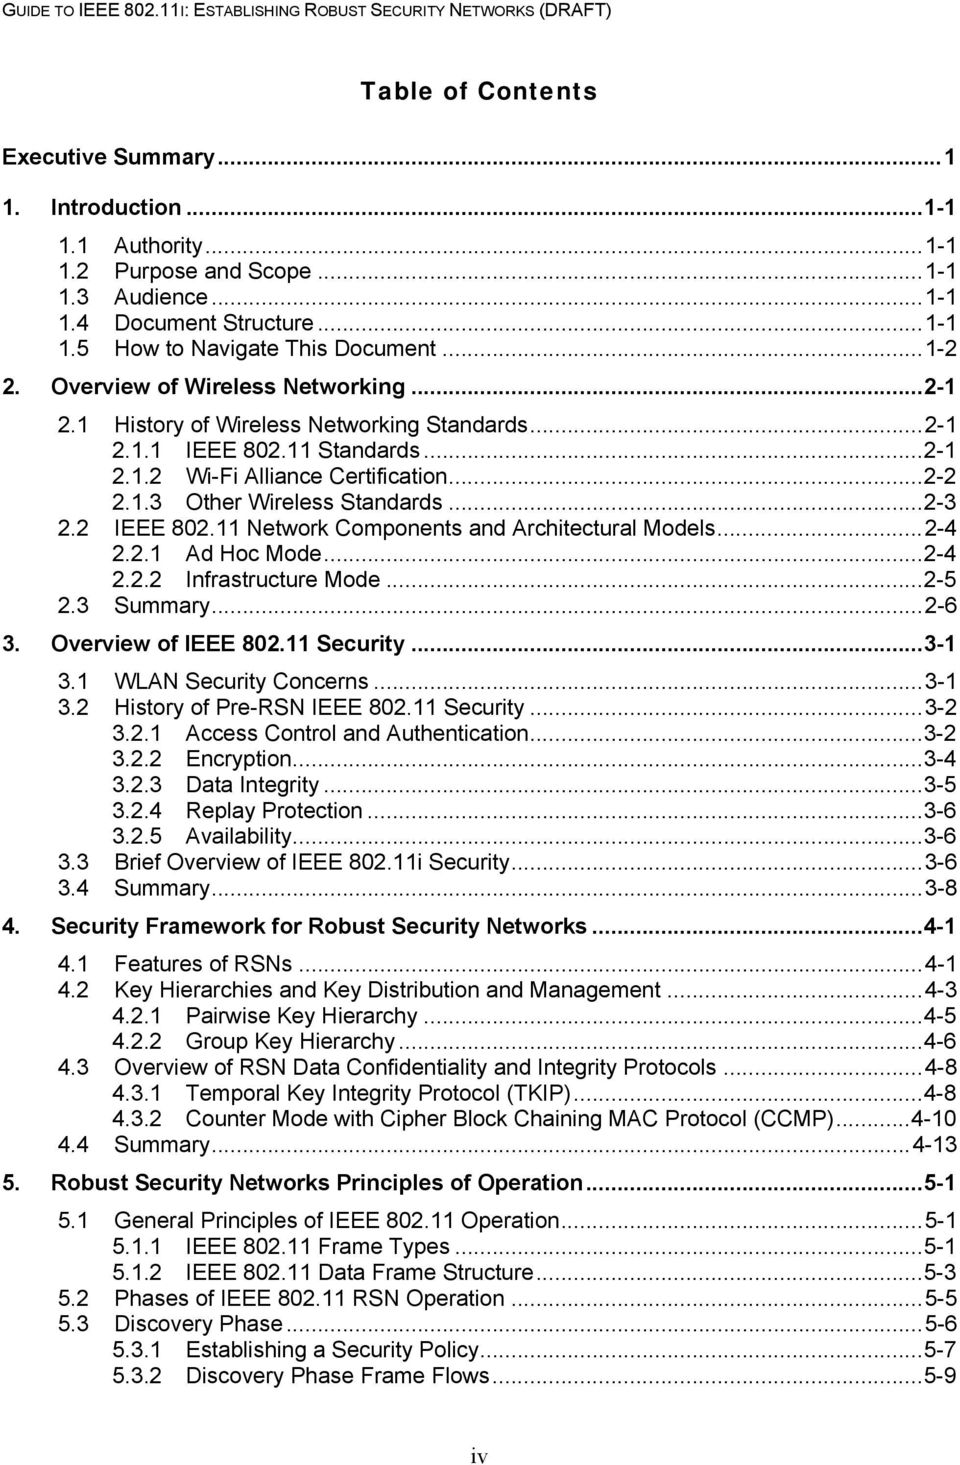 ..2-3 2.2 IEEE 802.11 Network Components and Architectural Models...2-4 2.2.1 Ad Hoc Mode...2-4 2.2.2 Infrastructure Mode...2-5 2.3 Summary...2-6 3. Overview of IEEE 802.11 Security...3-1 3.